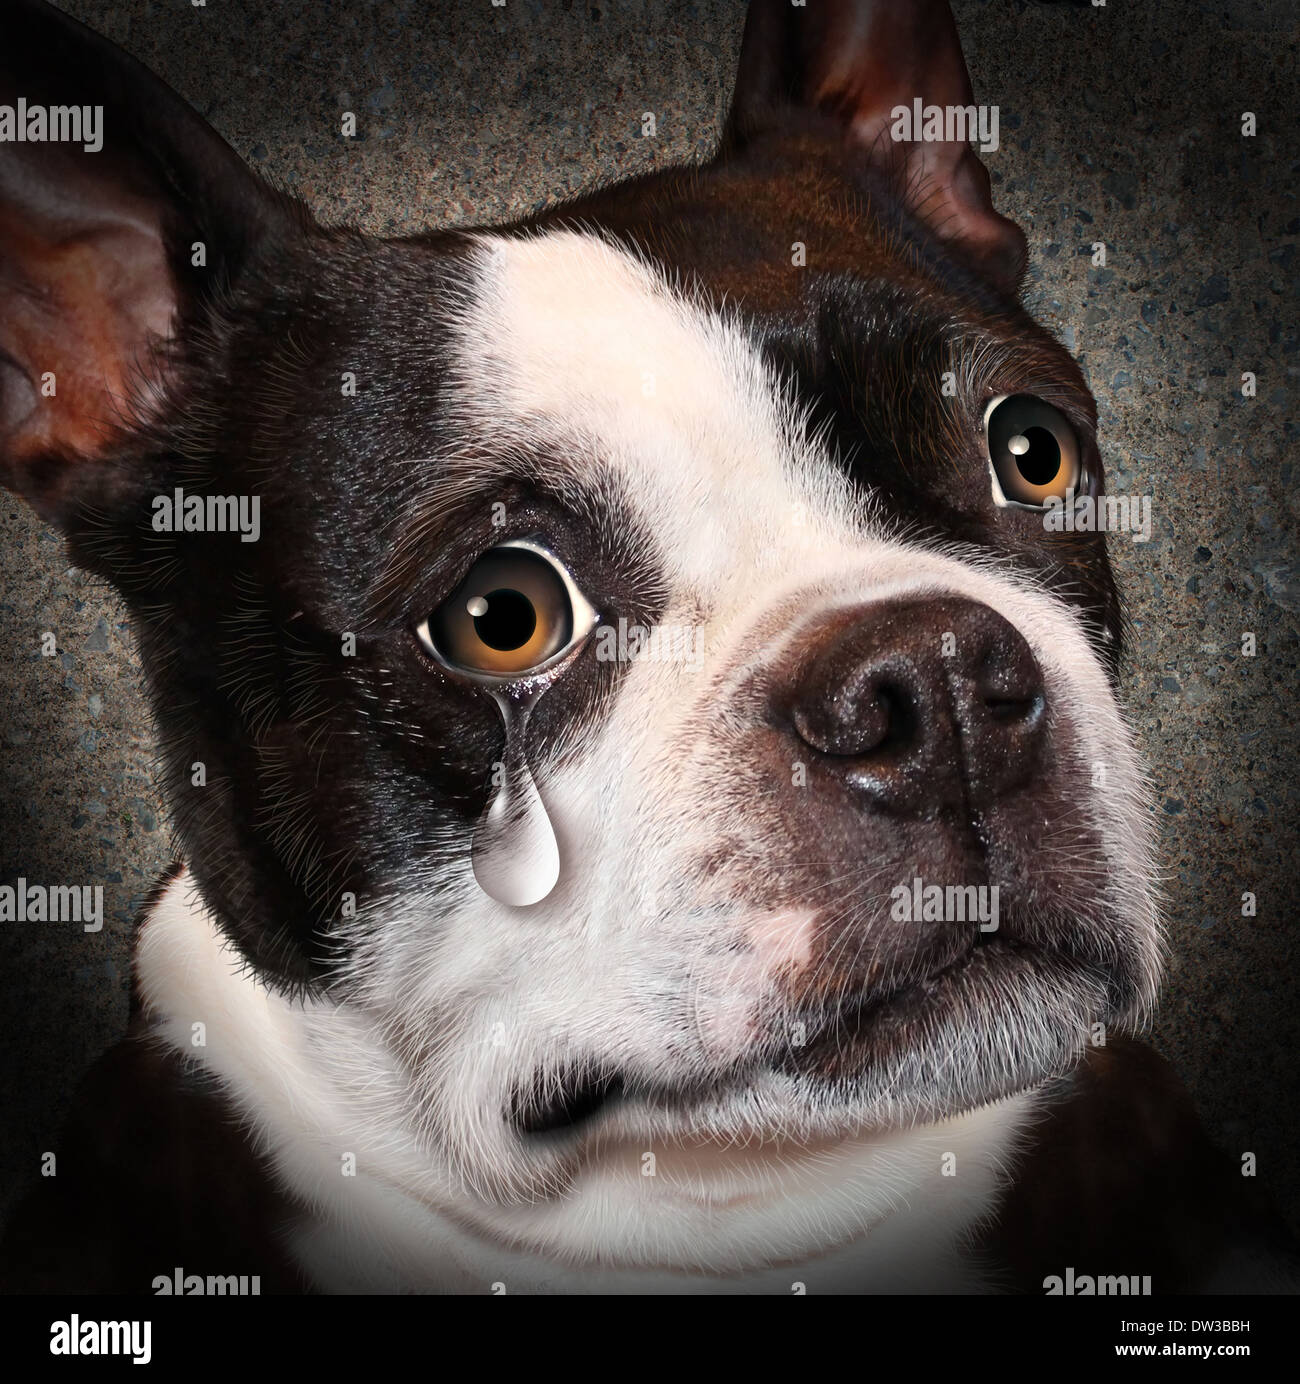 Lost pet animal cruelty and neglect concept with a sad crying dog looking at the viewer with a tear of despair as a concept of the need for humane treatment of living things. - Stock Image